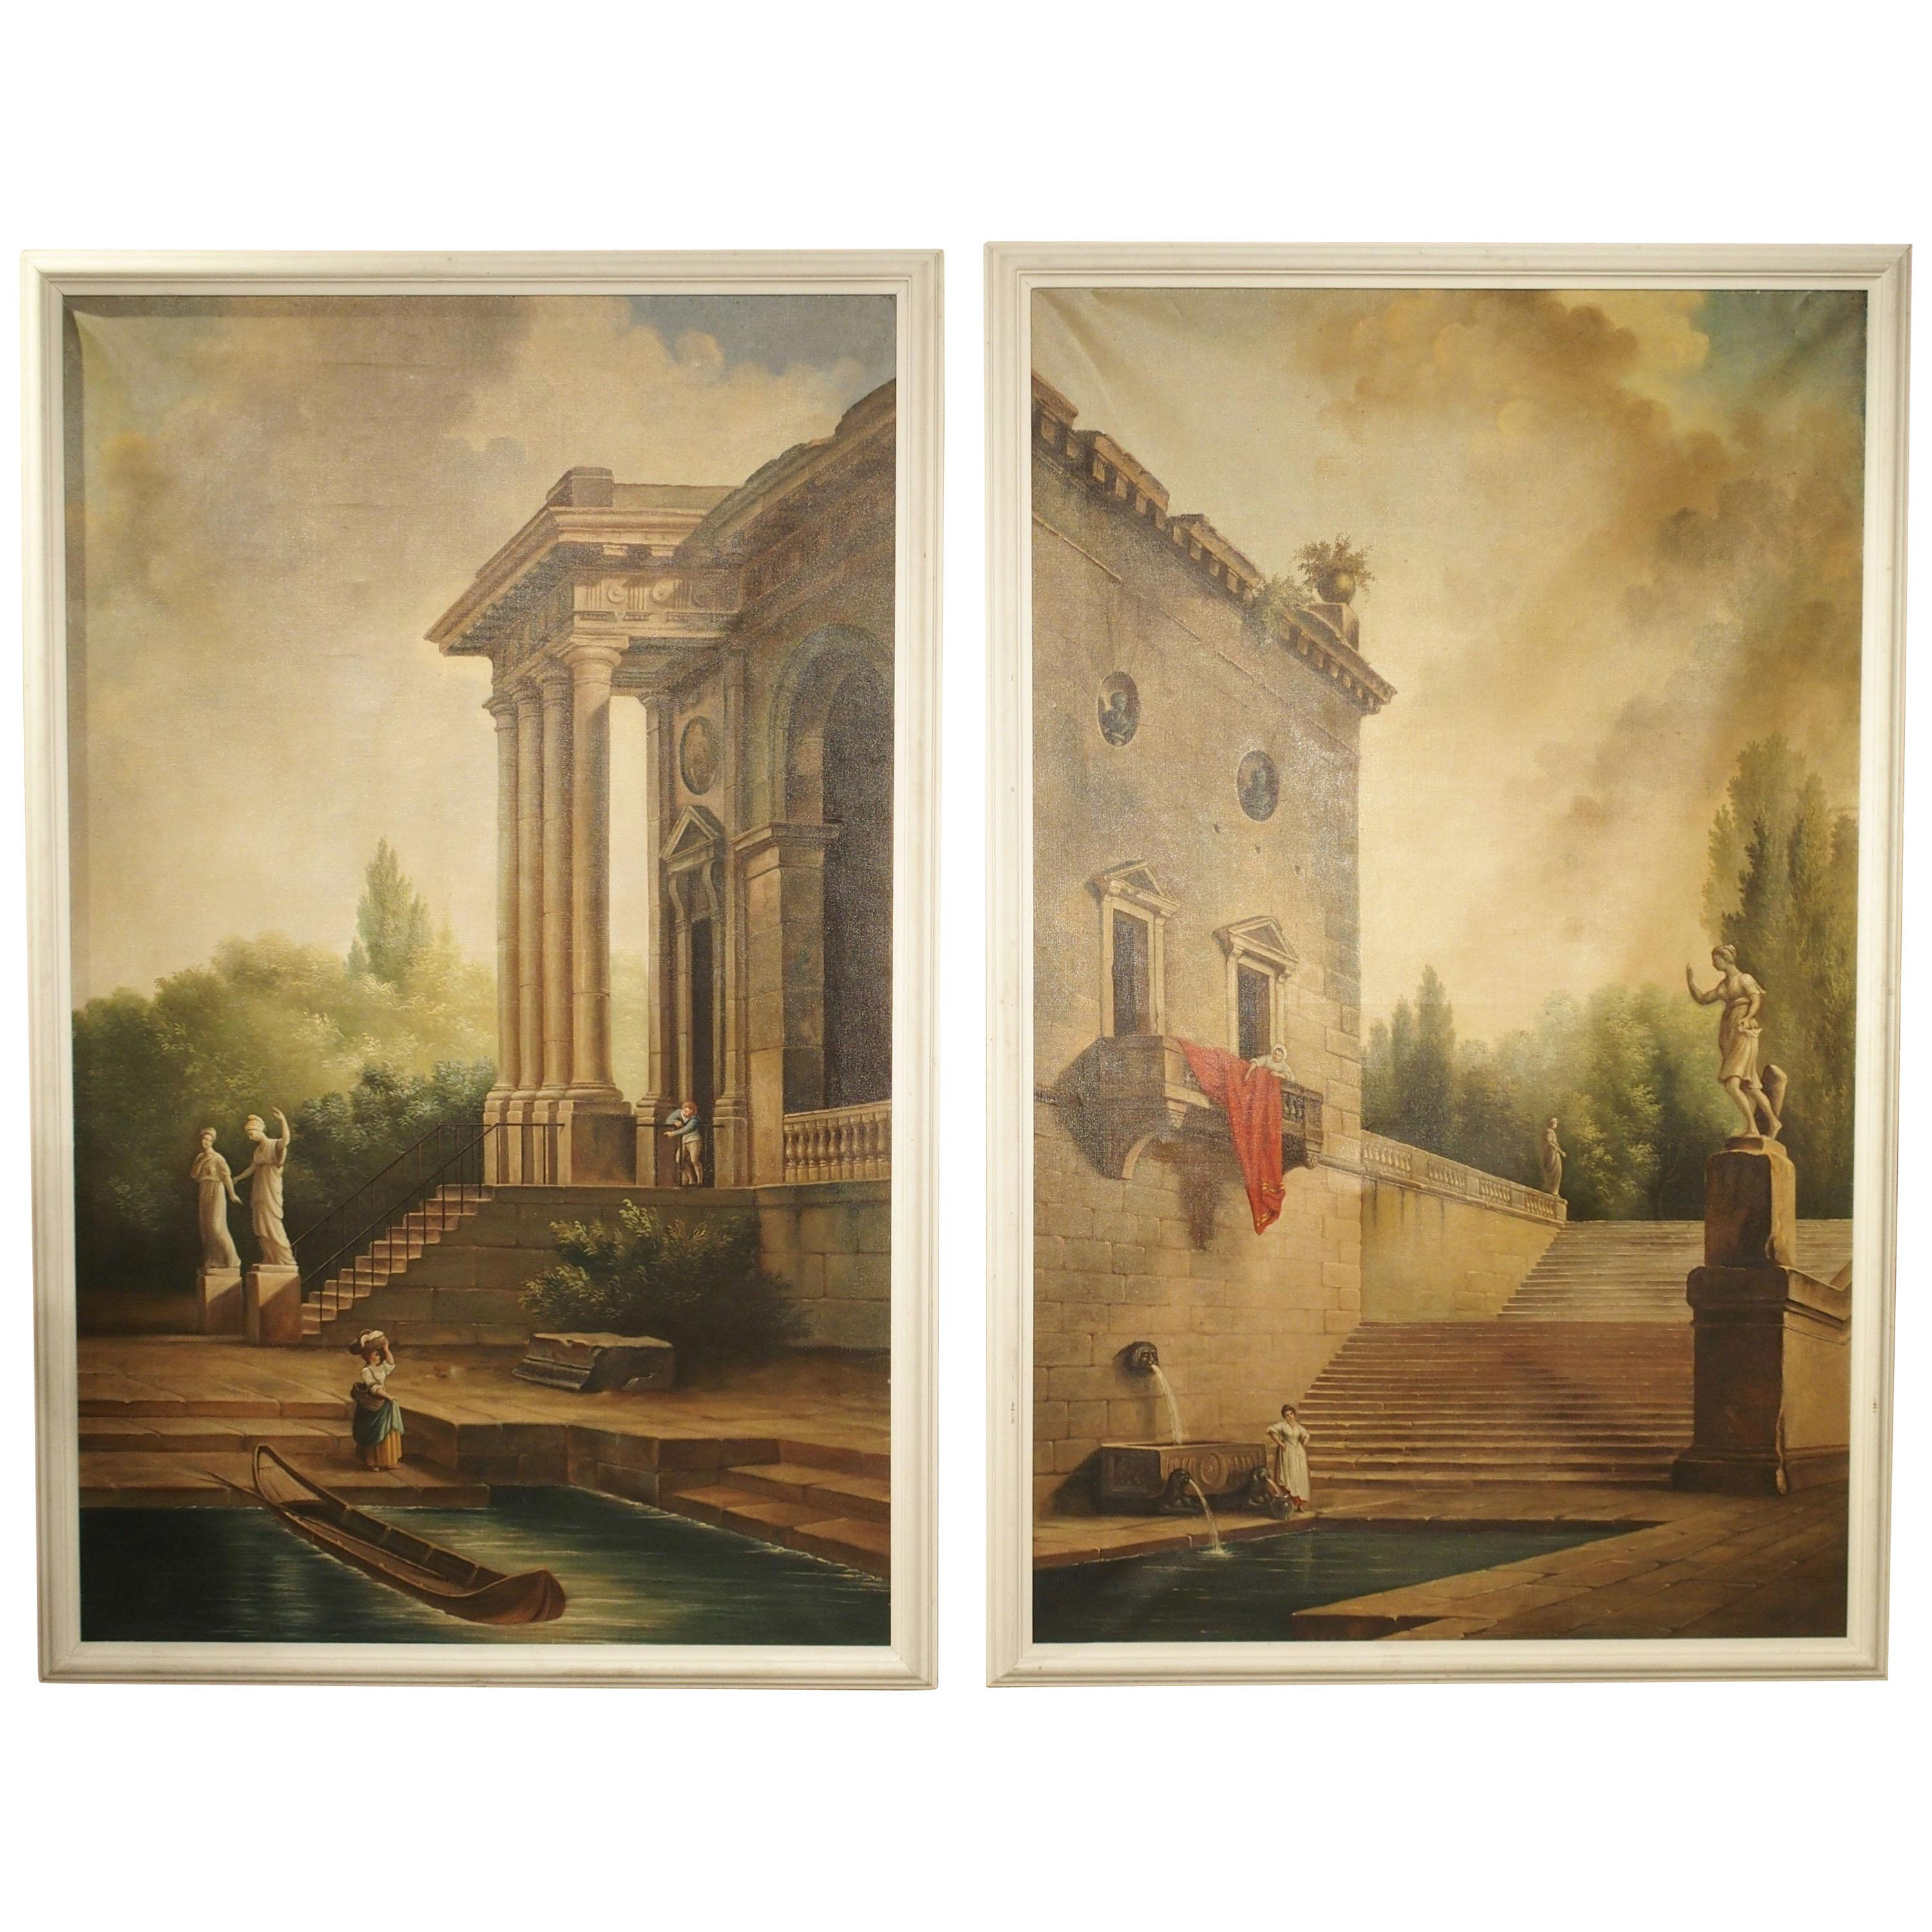 Pair of Large Scale Italian Landscape Oil on Canvas Paintings, Early 1900s